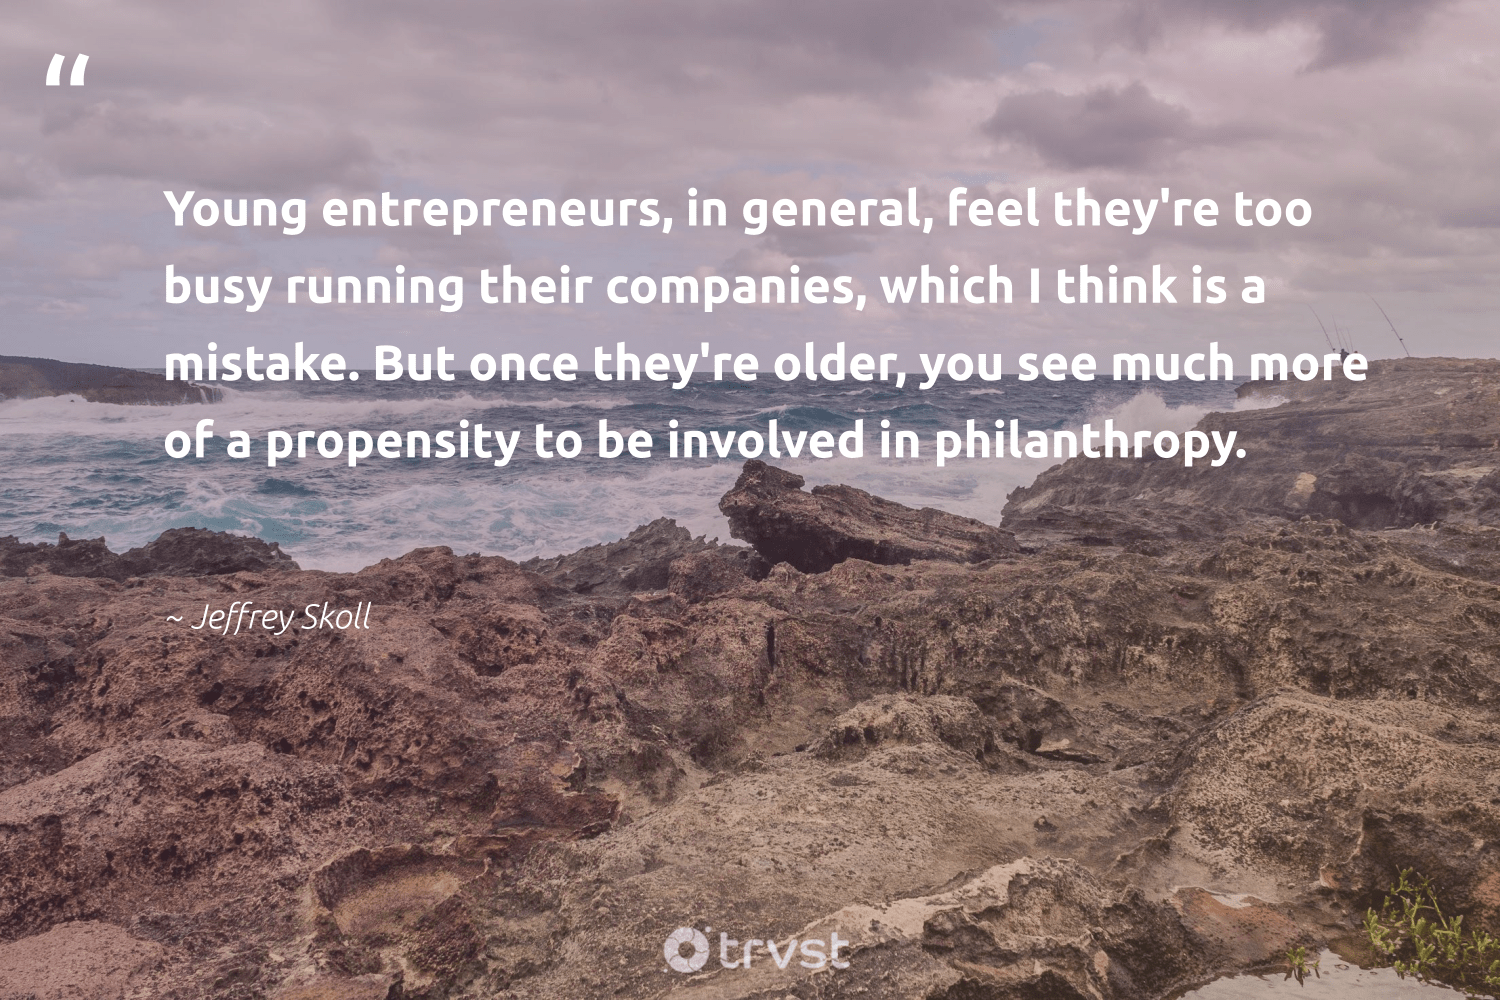 """Young entrepreneurs, in general, feel they're too busy running their companies, which I think is a mistake. But once they're older, you see much more of a propensity to be involved in philanthropy.""  - Jeffrey Skoll #trvst #quotes #philanthropy #philanthropic #togetherwecan #giveforthefuture #planetearthfirst #changemakers #itscooltobekind #ecoconscious #dogood #bethechange"